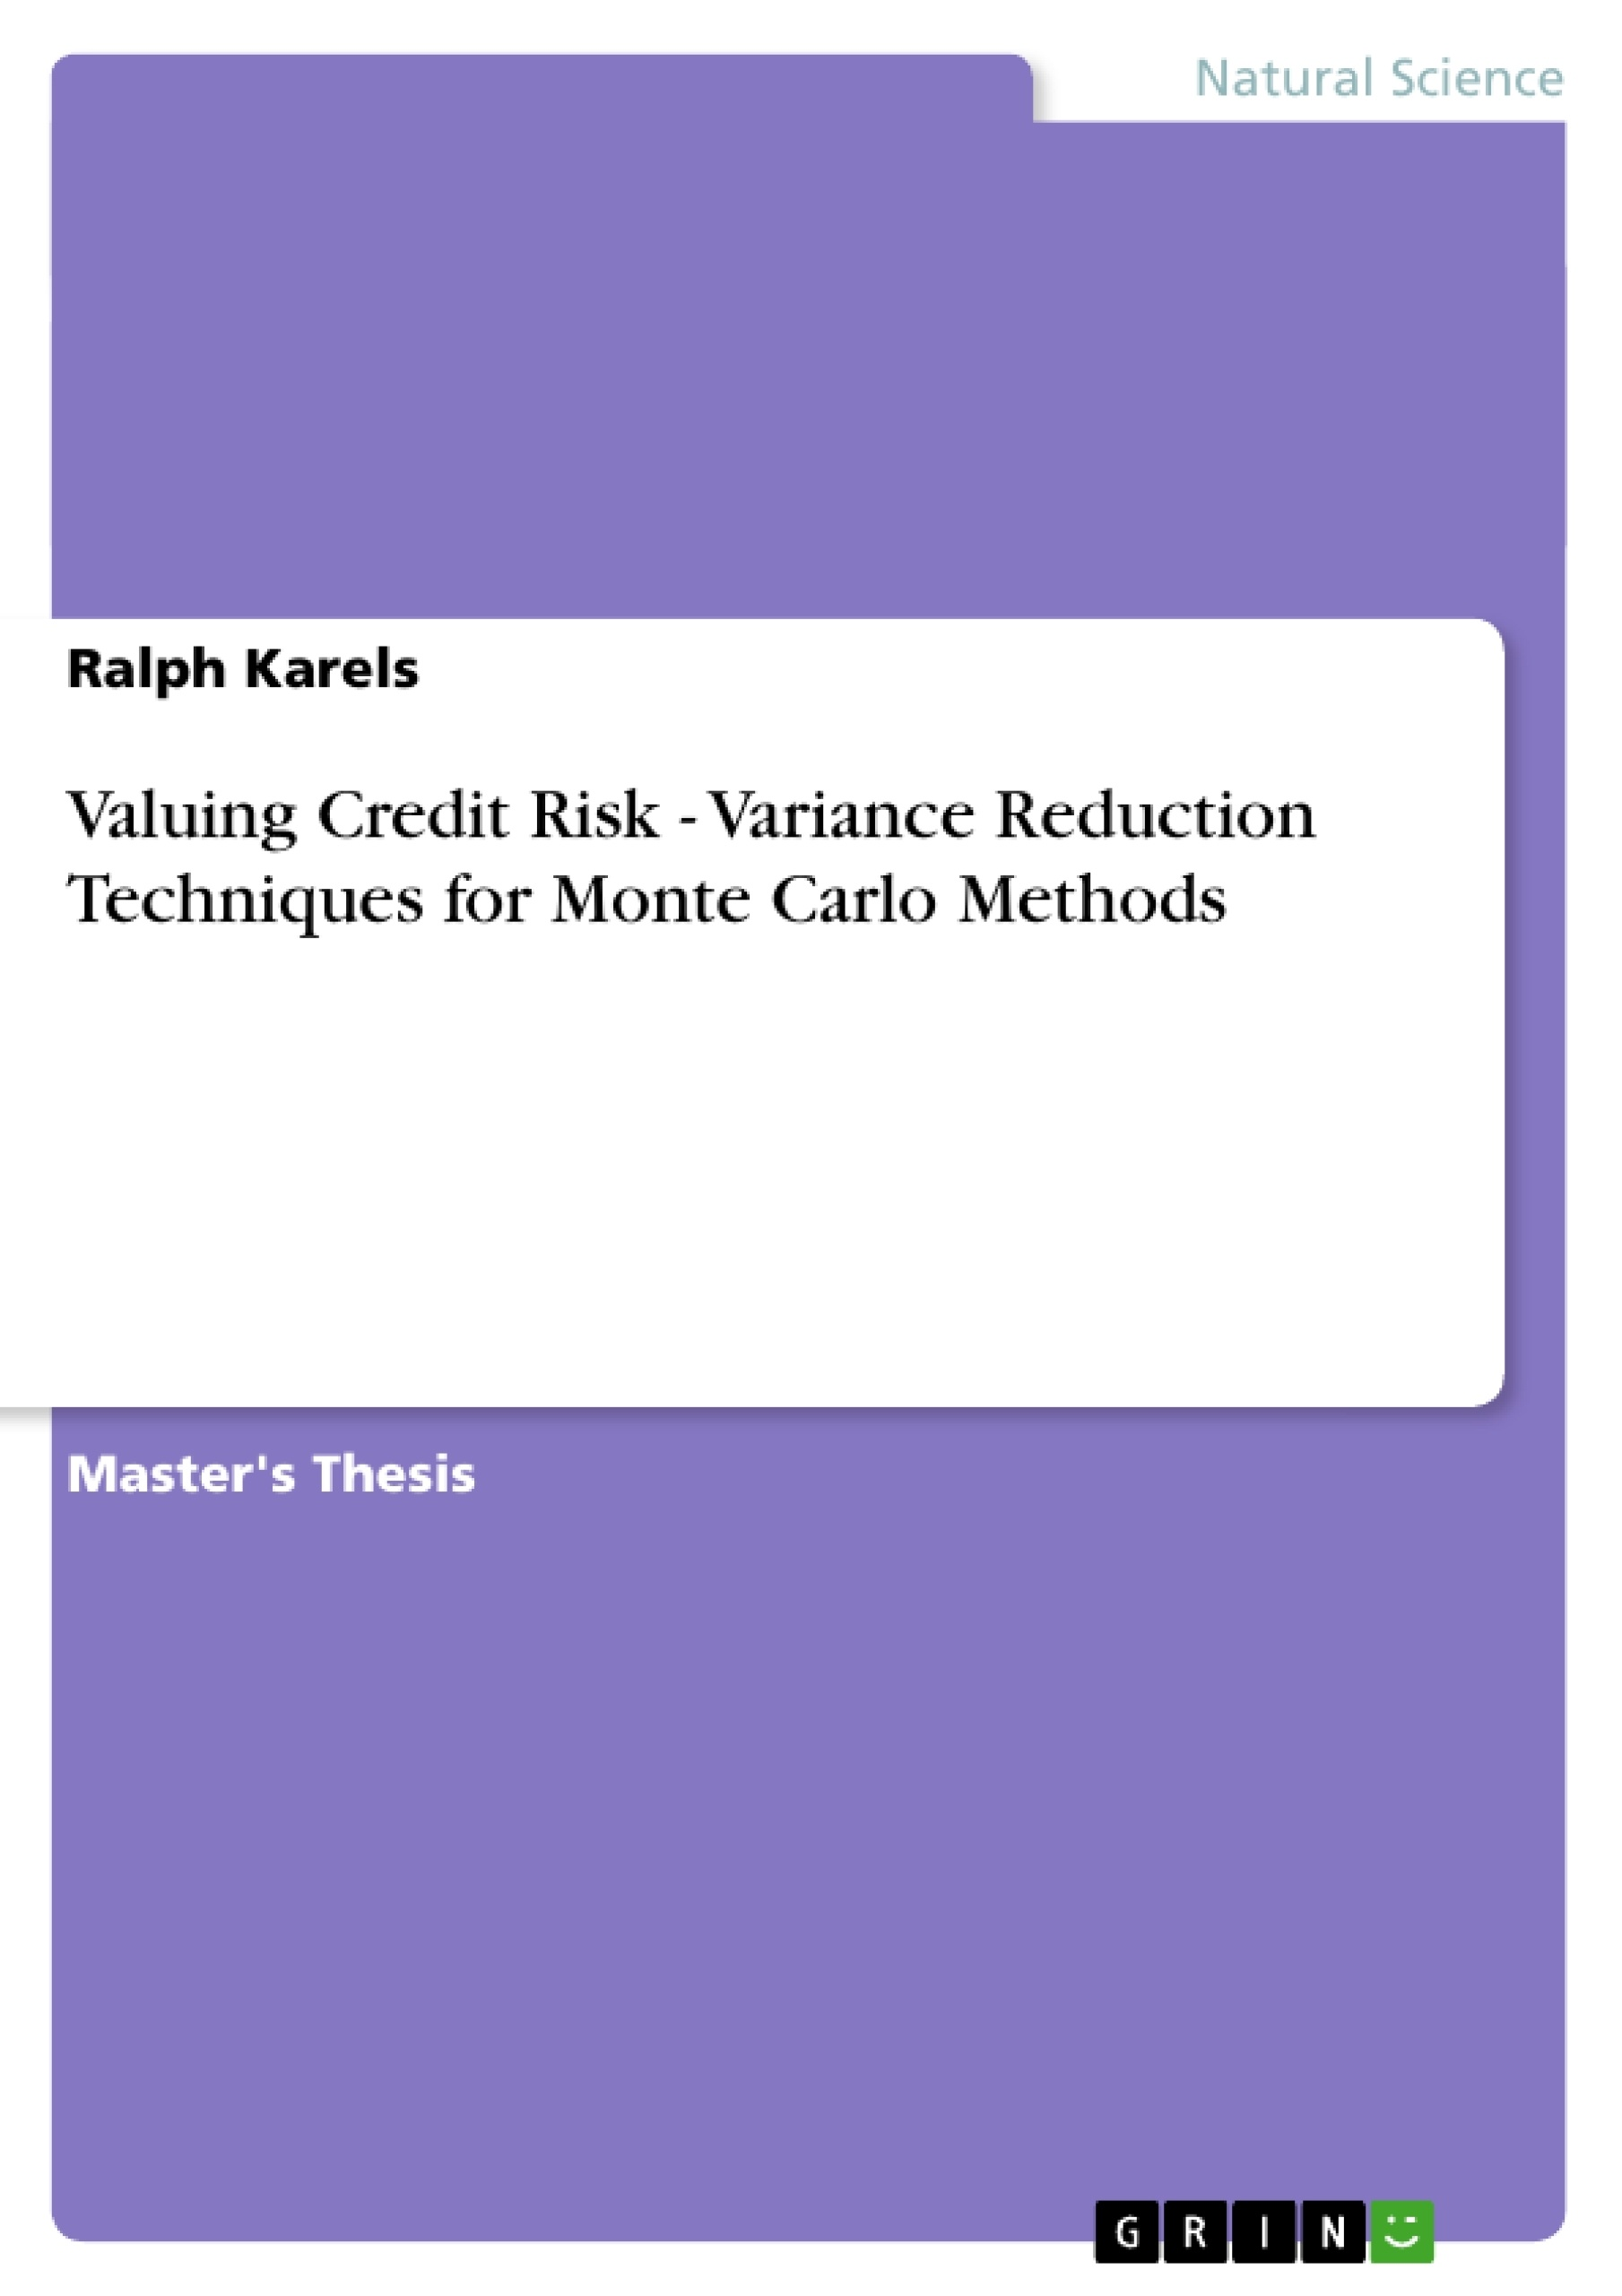 thesis on credit risk